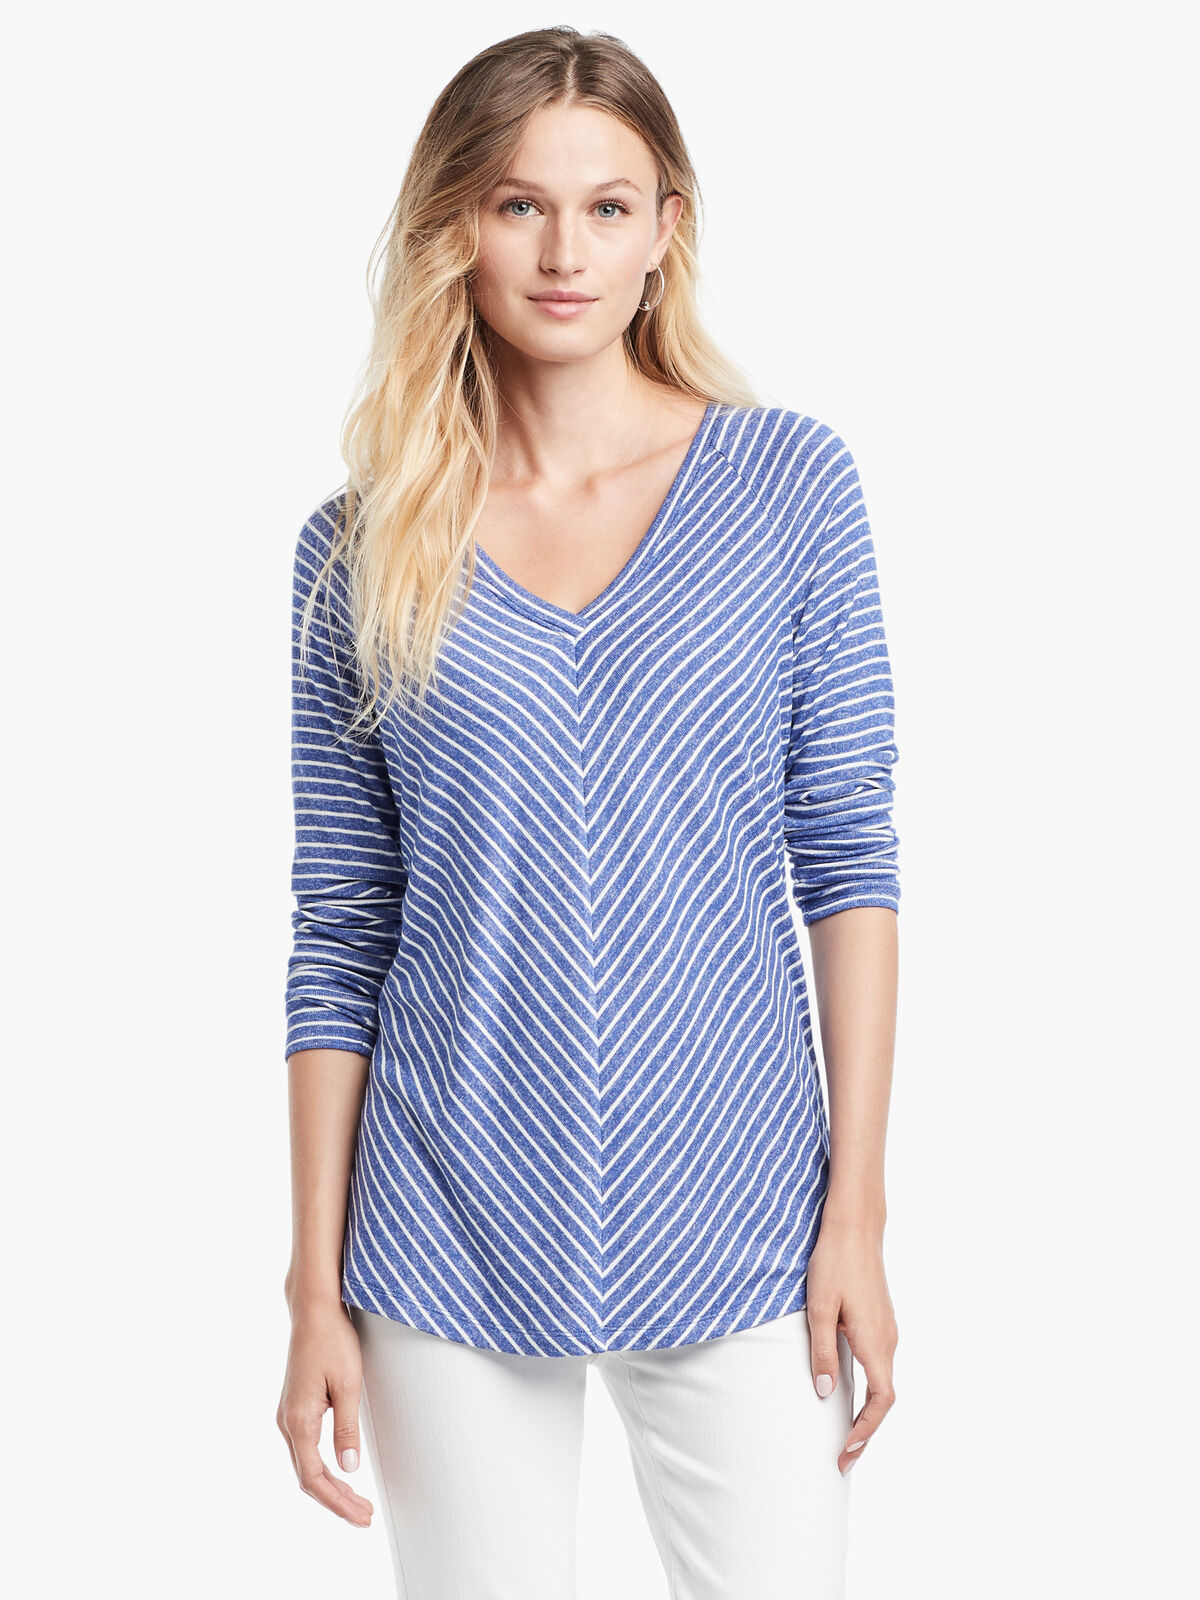 Angled Relax Stripes Top